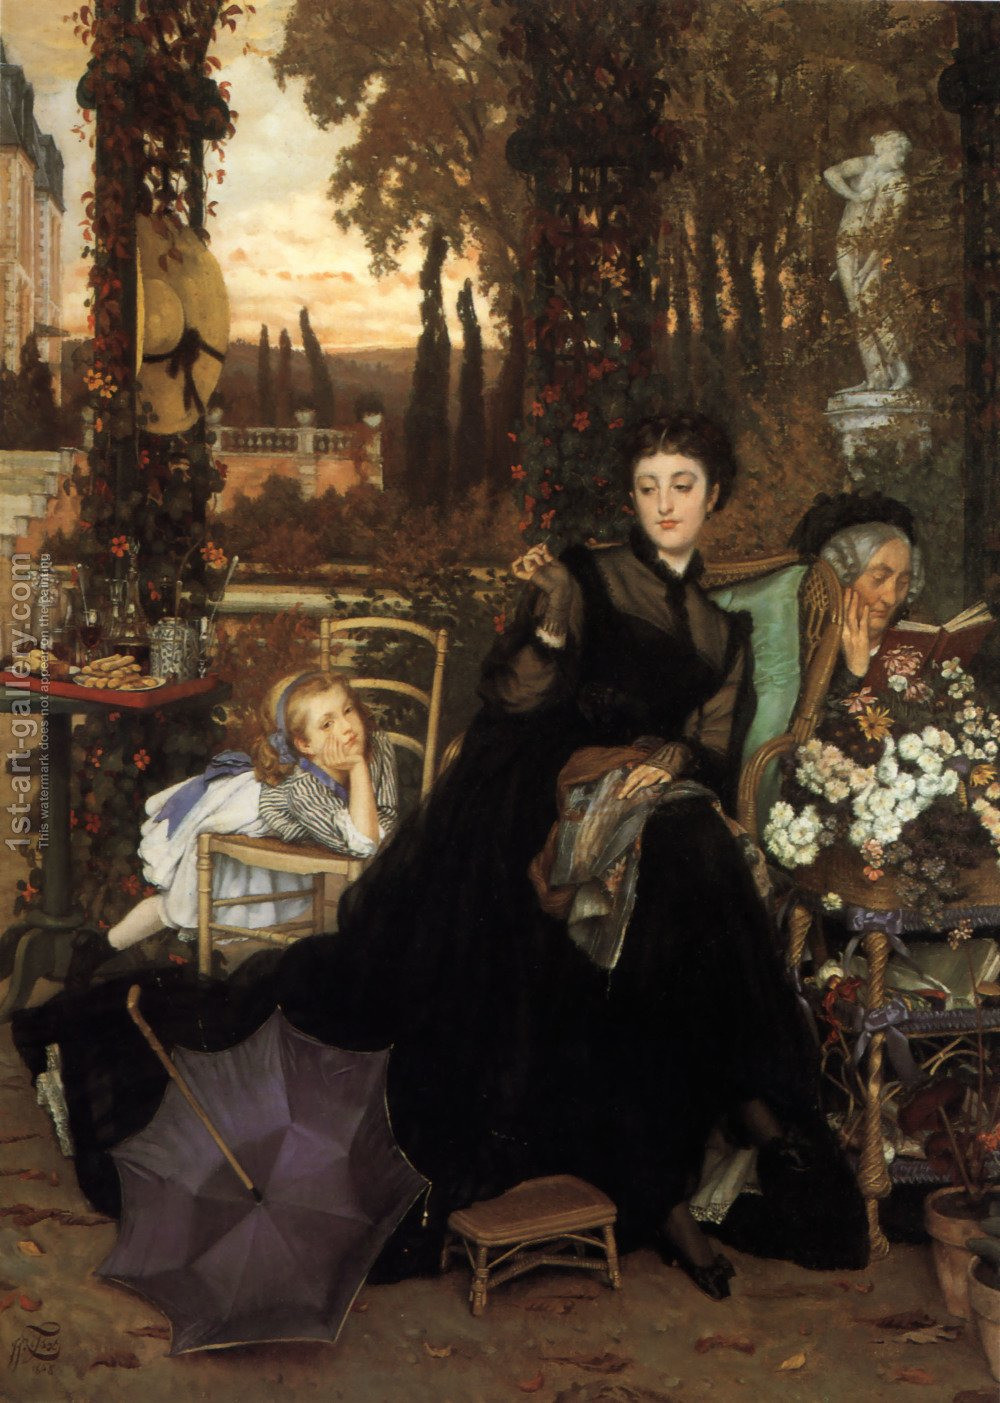 Painting of A Widow by James Jacques Joseph Tissot